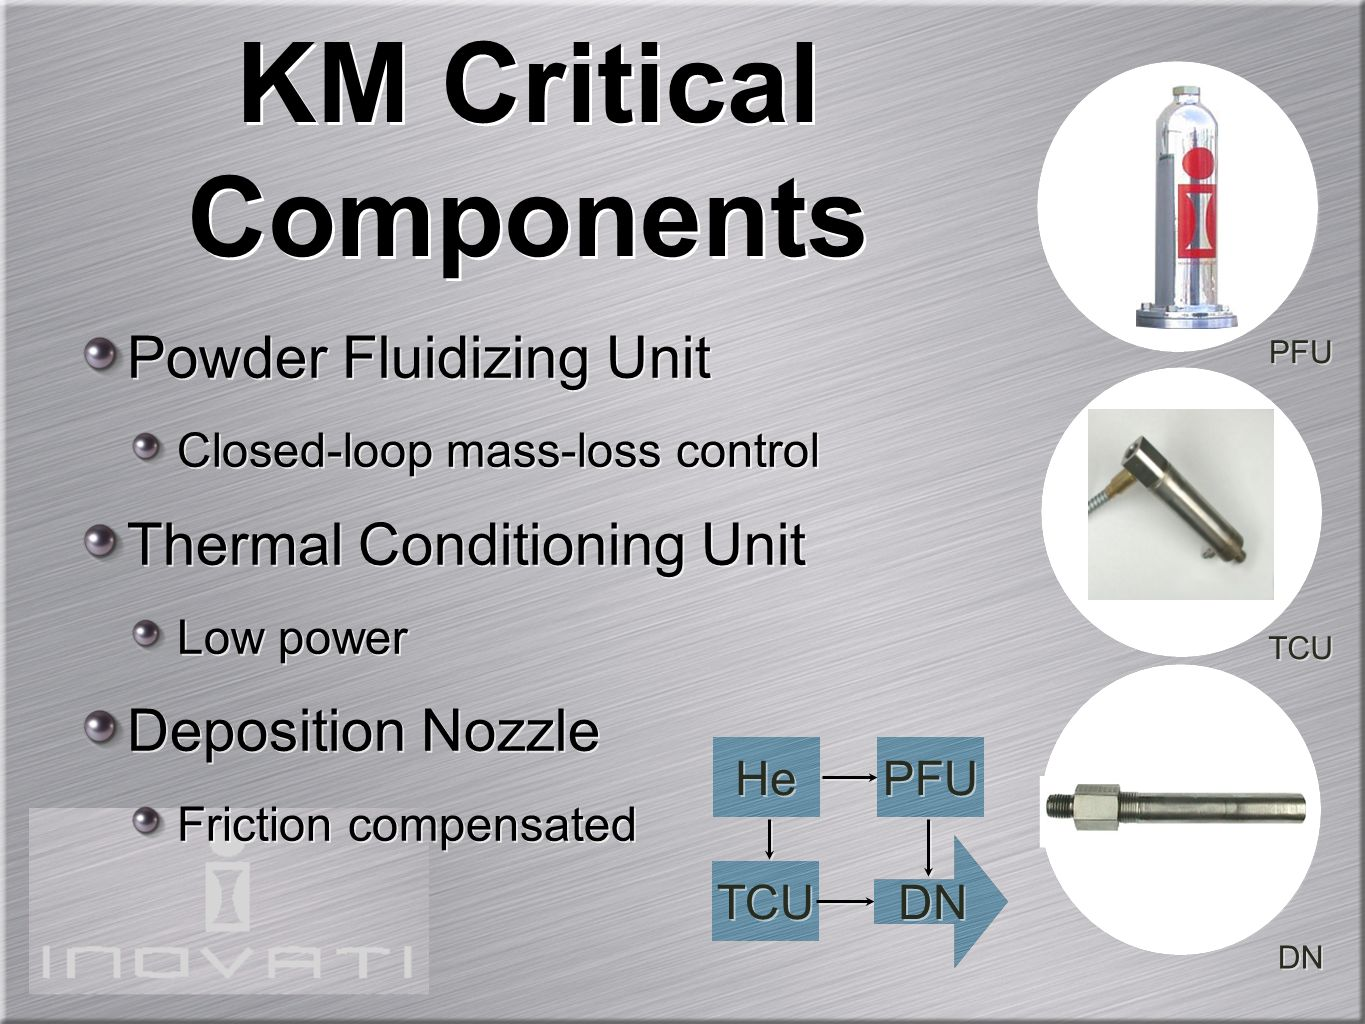 KM Critical Components